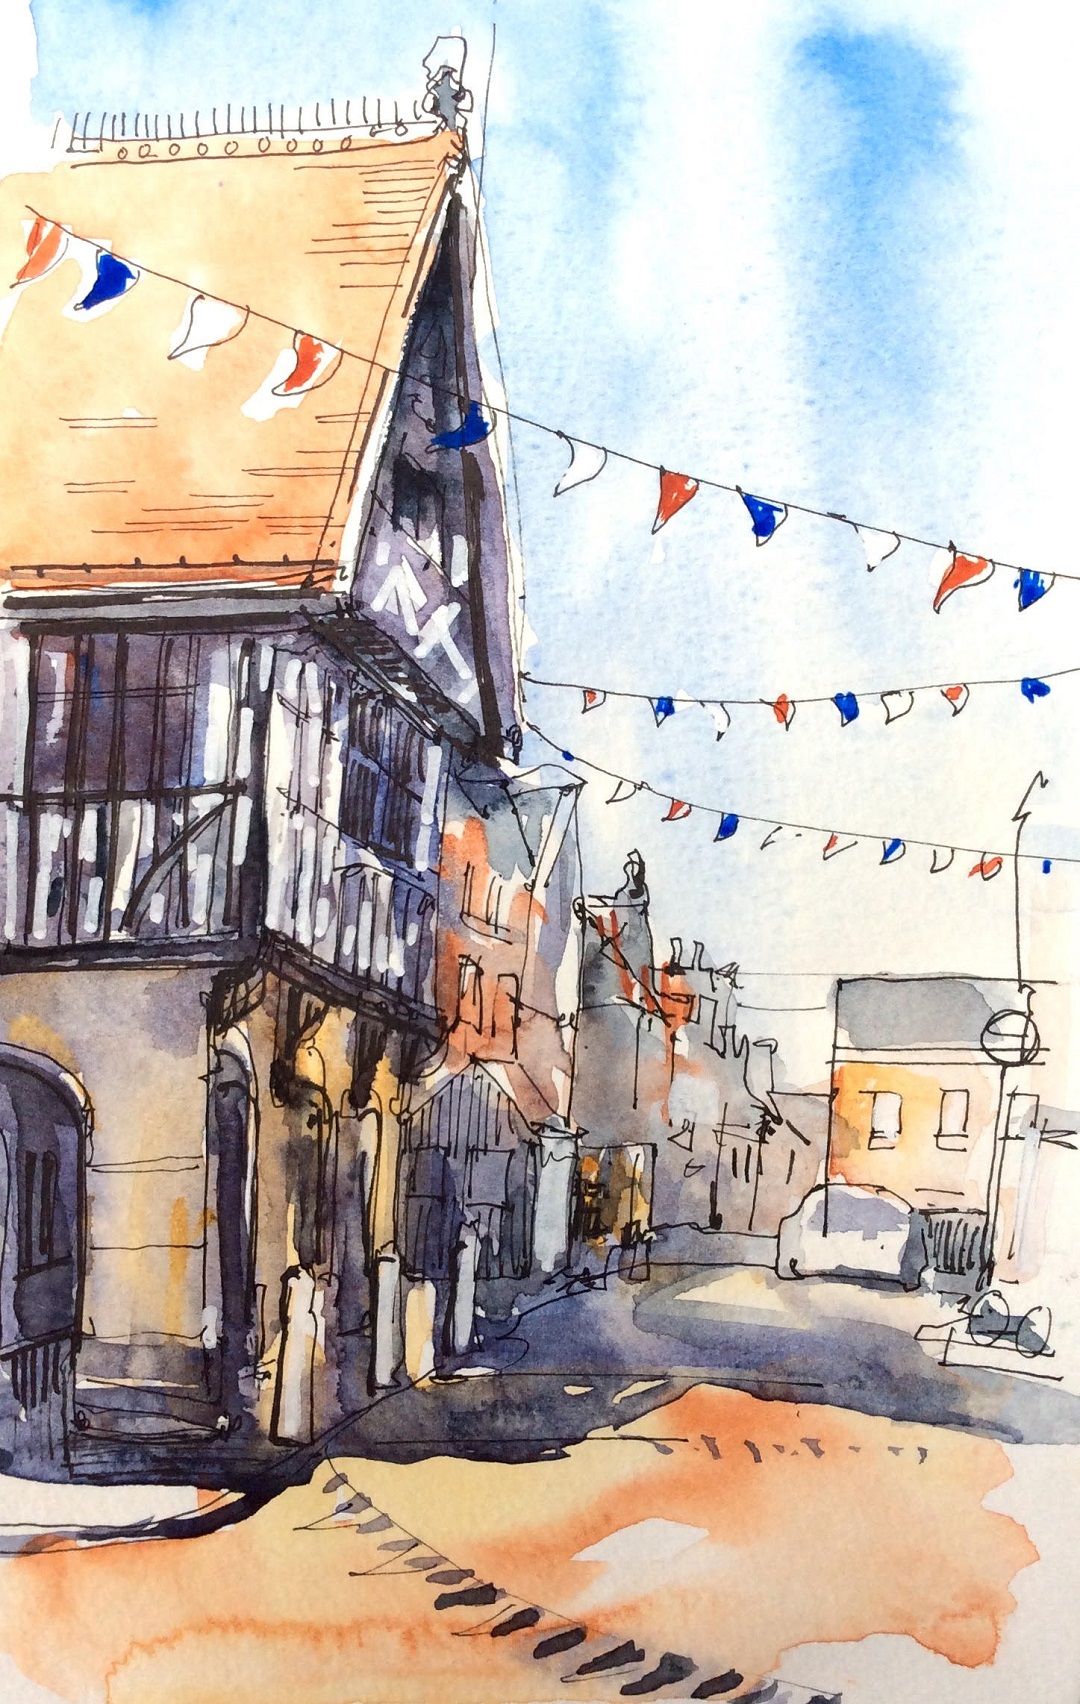 Saffron Walden, Essex, July 2017 Katie Clare Pen, wash and marker pen, drawn in the artist's Moleskine watercolour sketchbook, 13 x 21 cm